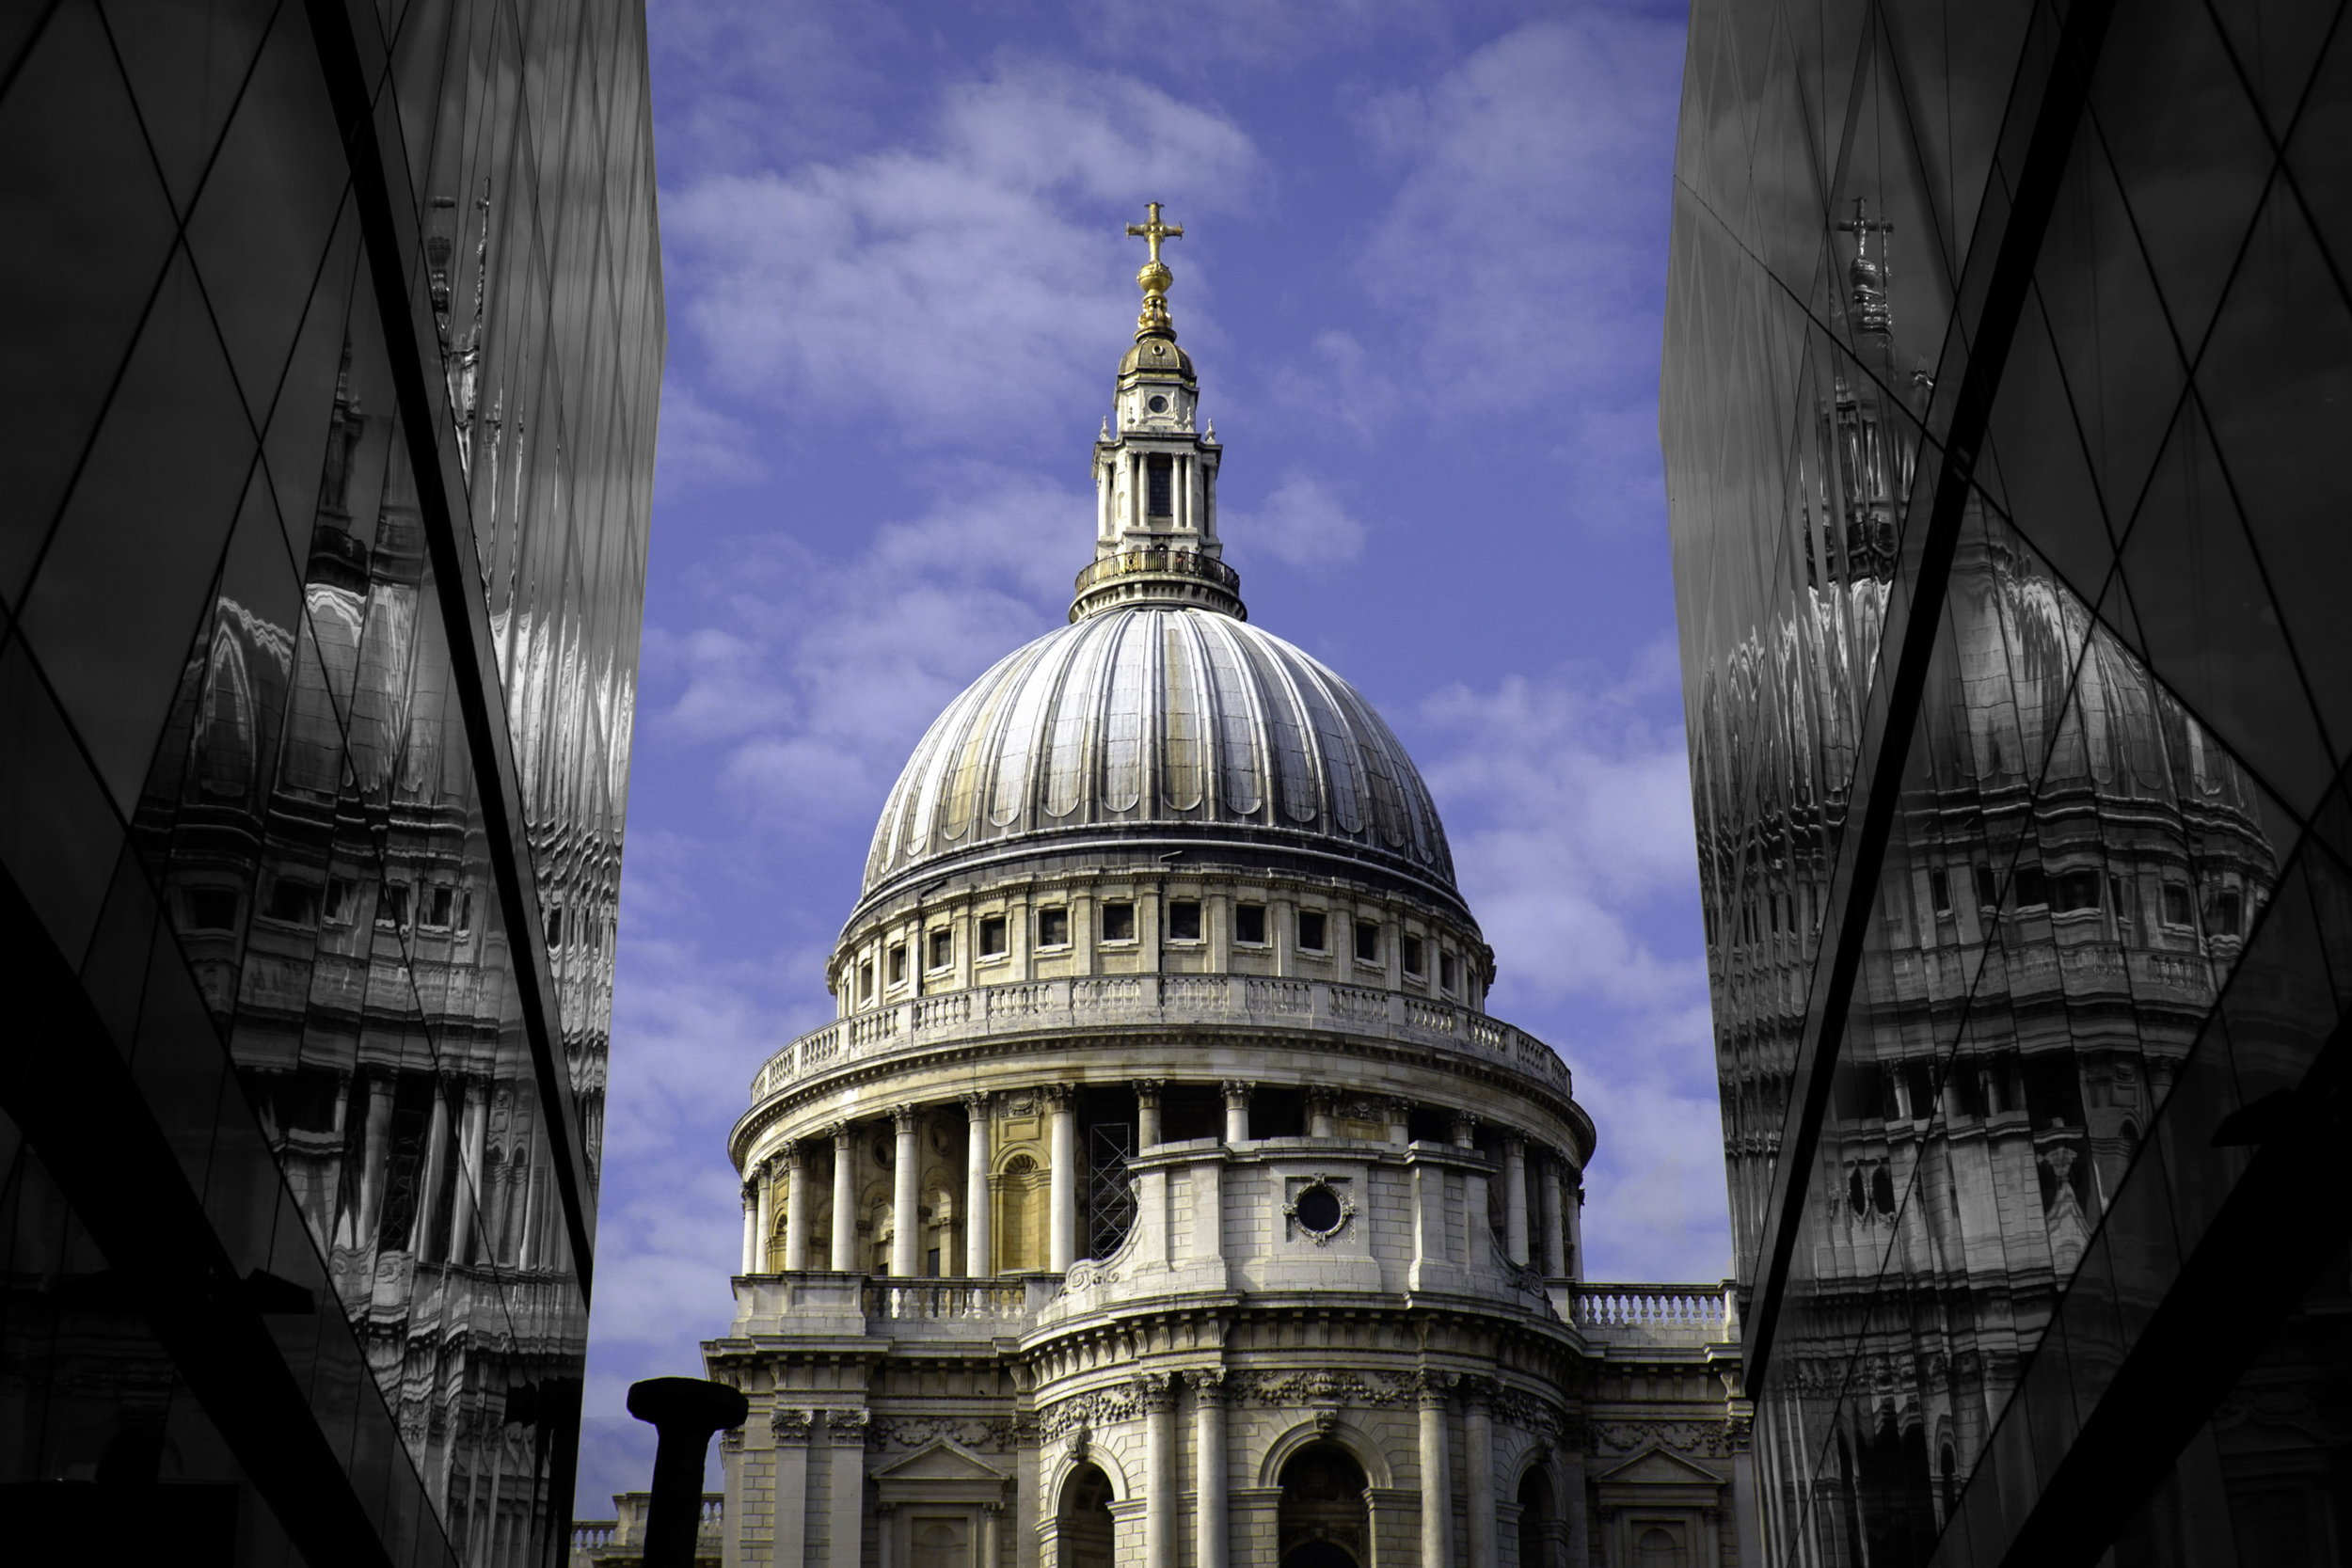 Saint Paul's Reflection 2